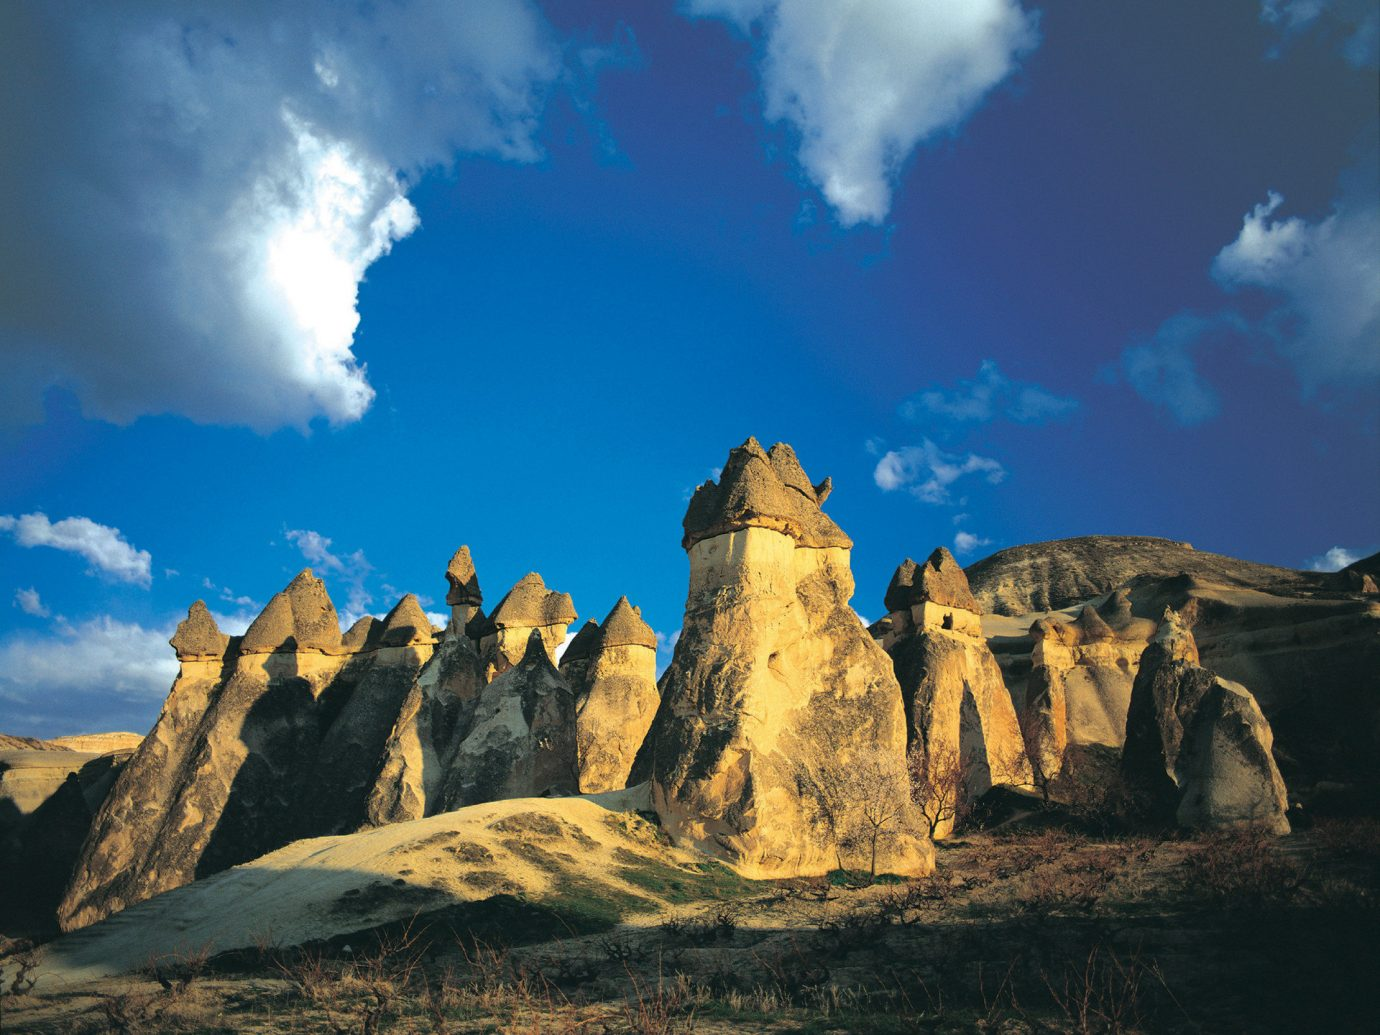 Budget sky outdoor mountainous landforms Nature landform geographical feature cloud landmark mountain rock badlands valley landscape hill butte mountain range plateau clouds terrain formation arch cliff geology day